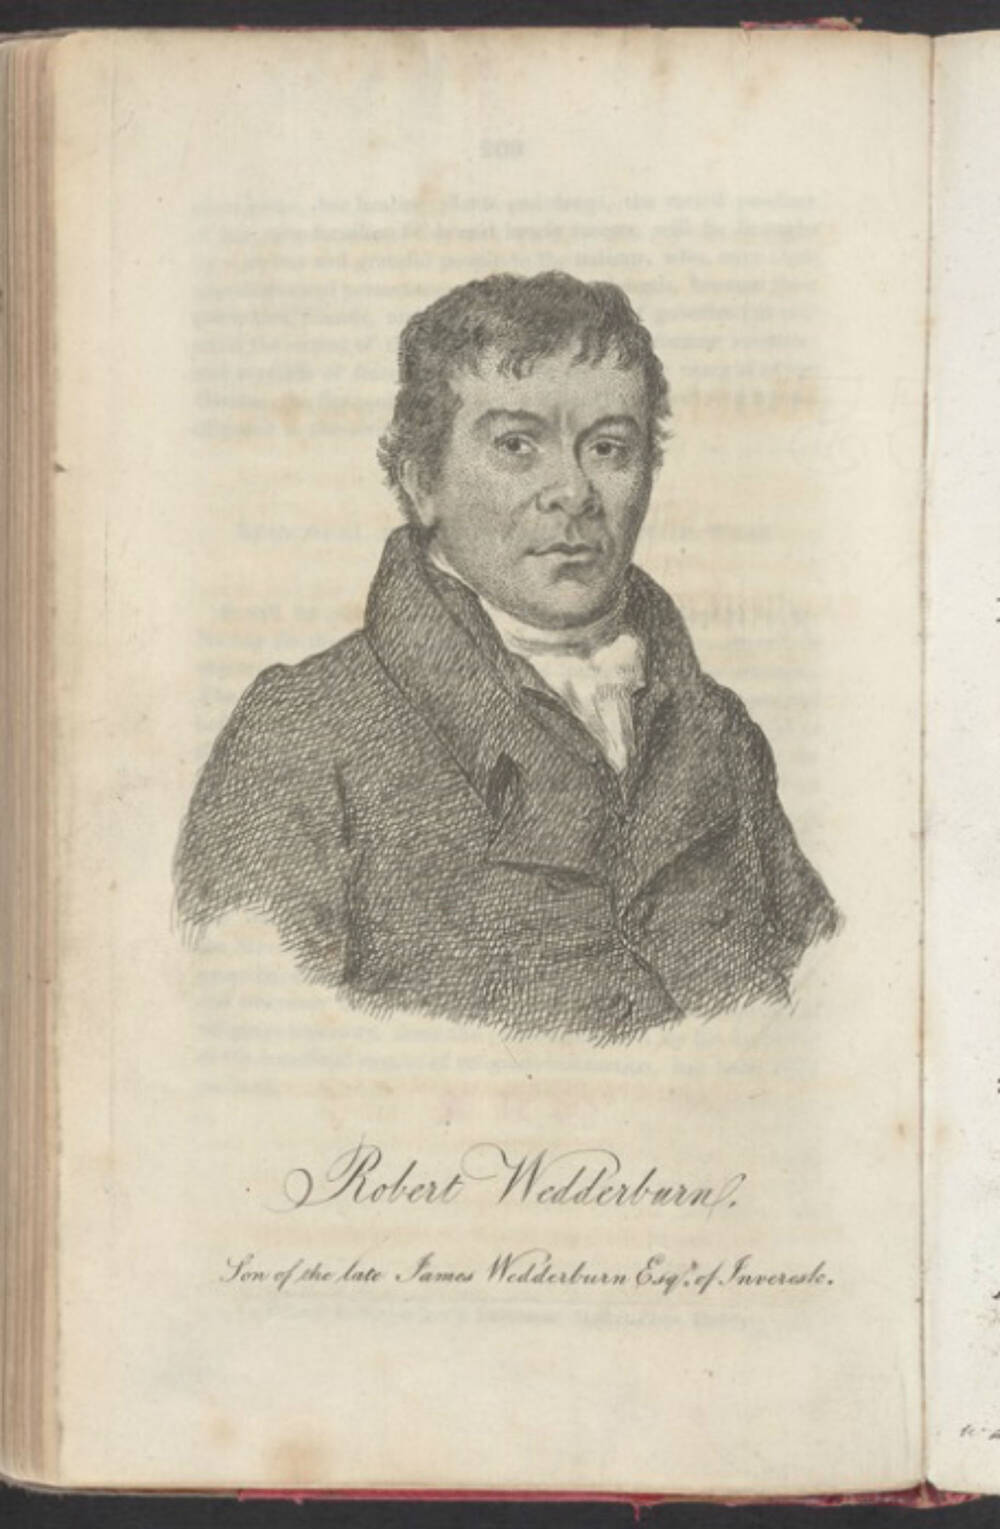 Robert Wedderburn (1762–1835/6), radical and anti-slavery advocate, from the frontispiece to his book, The Horrors of Slavery, 1824